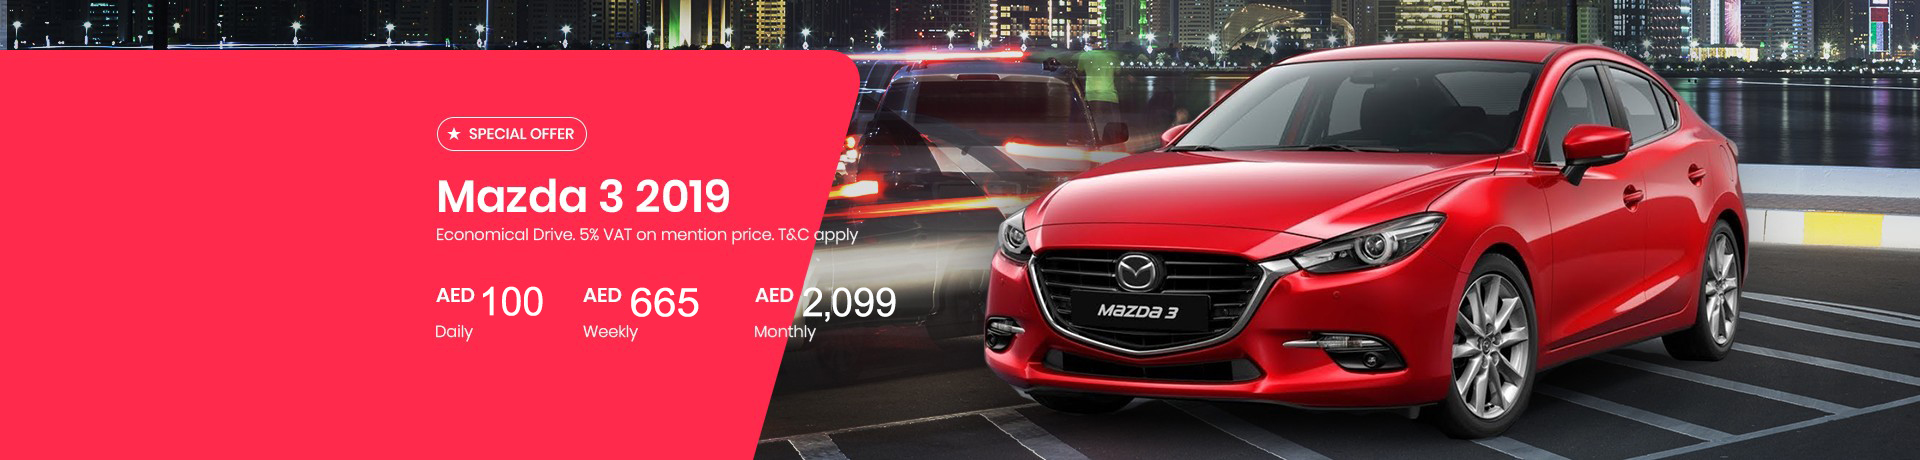 Rent a Mazda 3 2019 for AED 70/Day